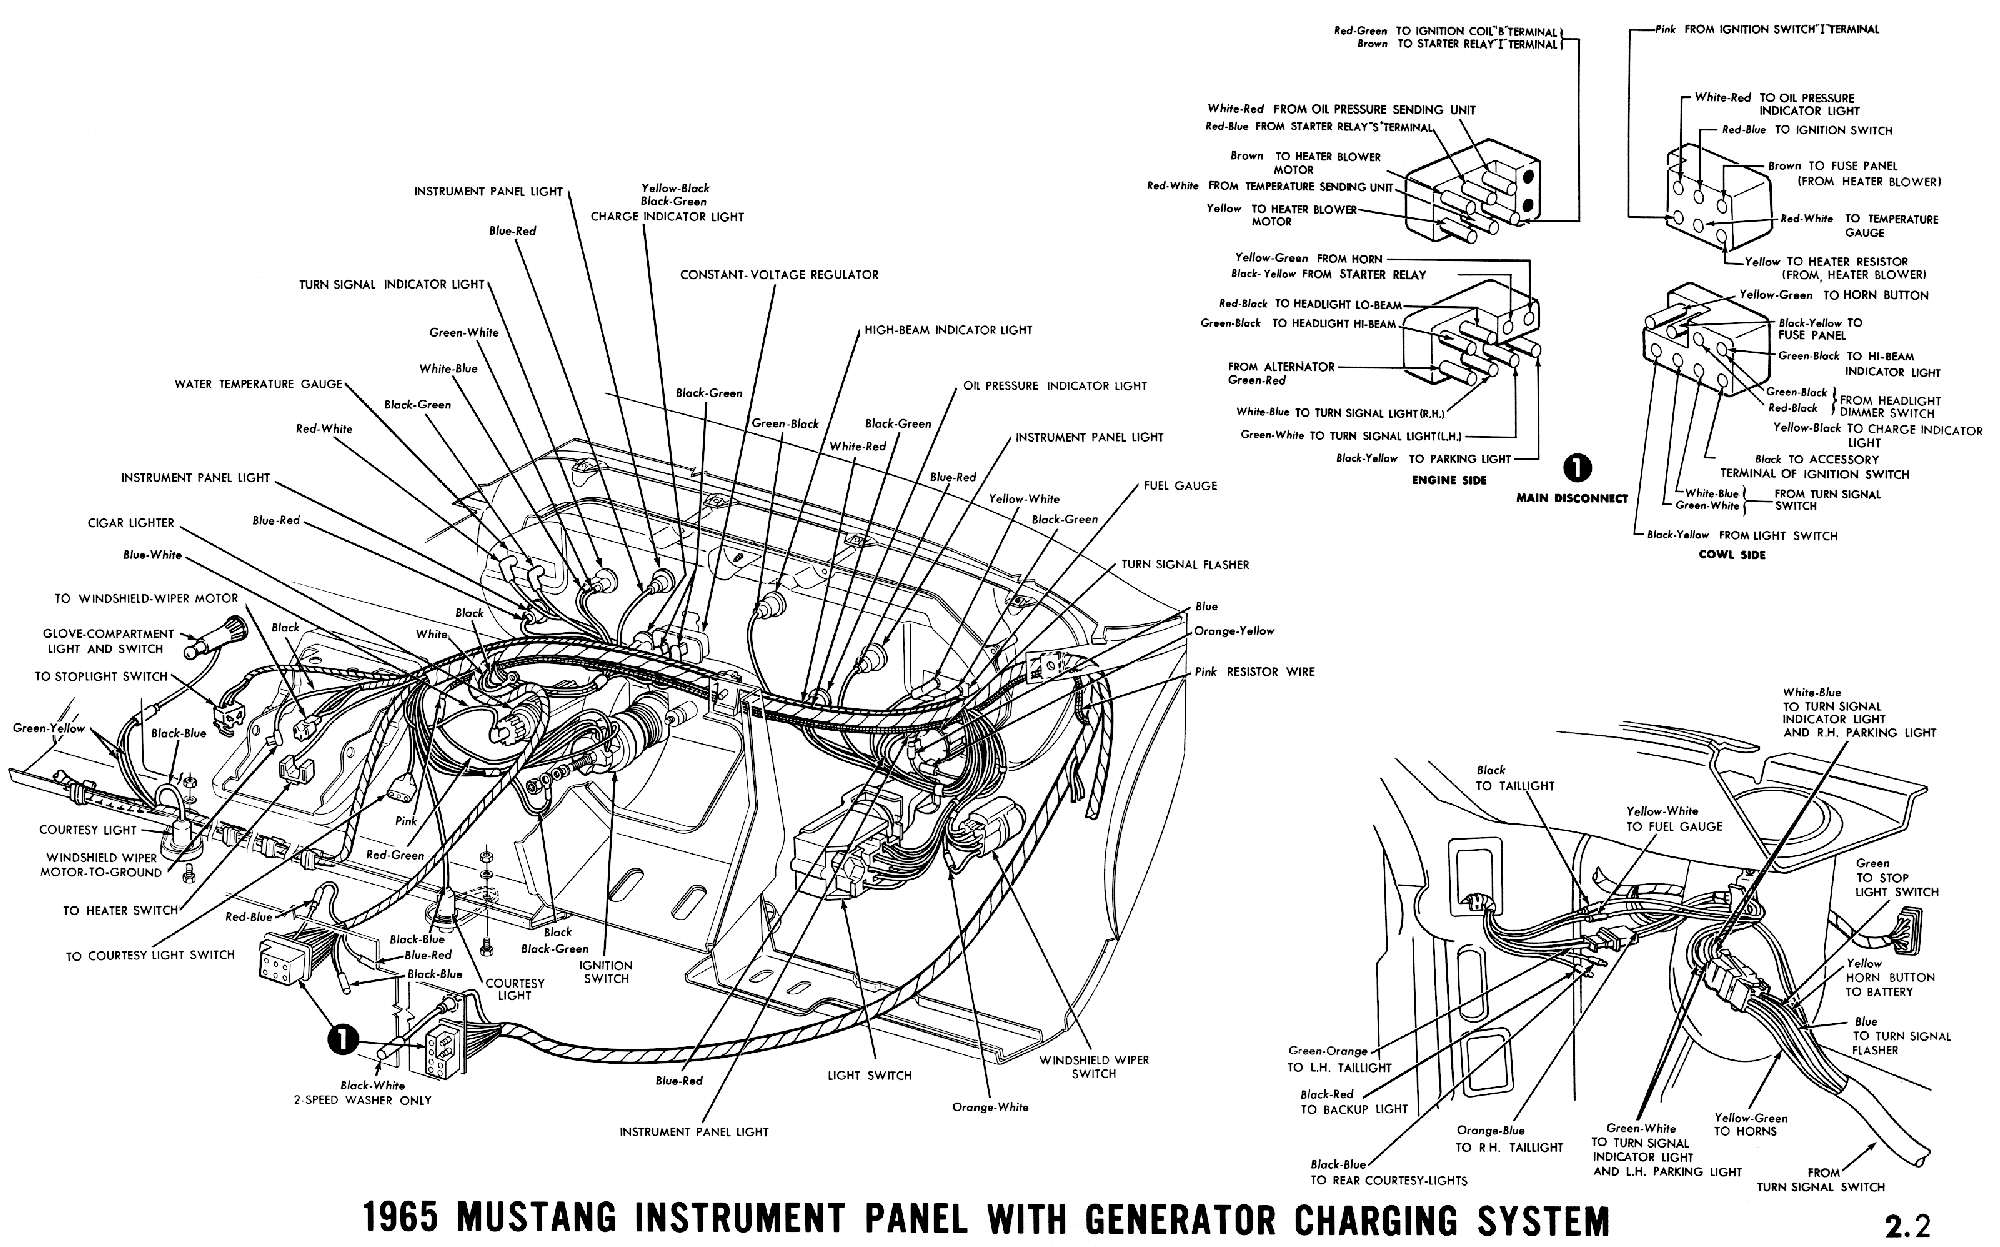 hight resolution of 1965 mustang wiring diagrams average joe restoration 1968 mustang dash wiring diagram 2014 mustang wiring schematics